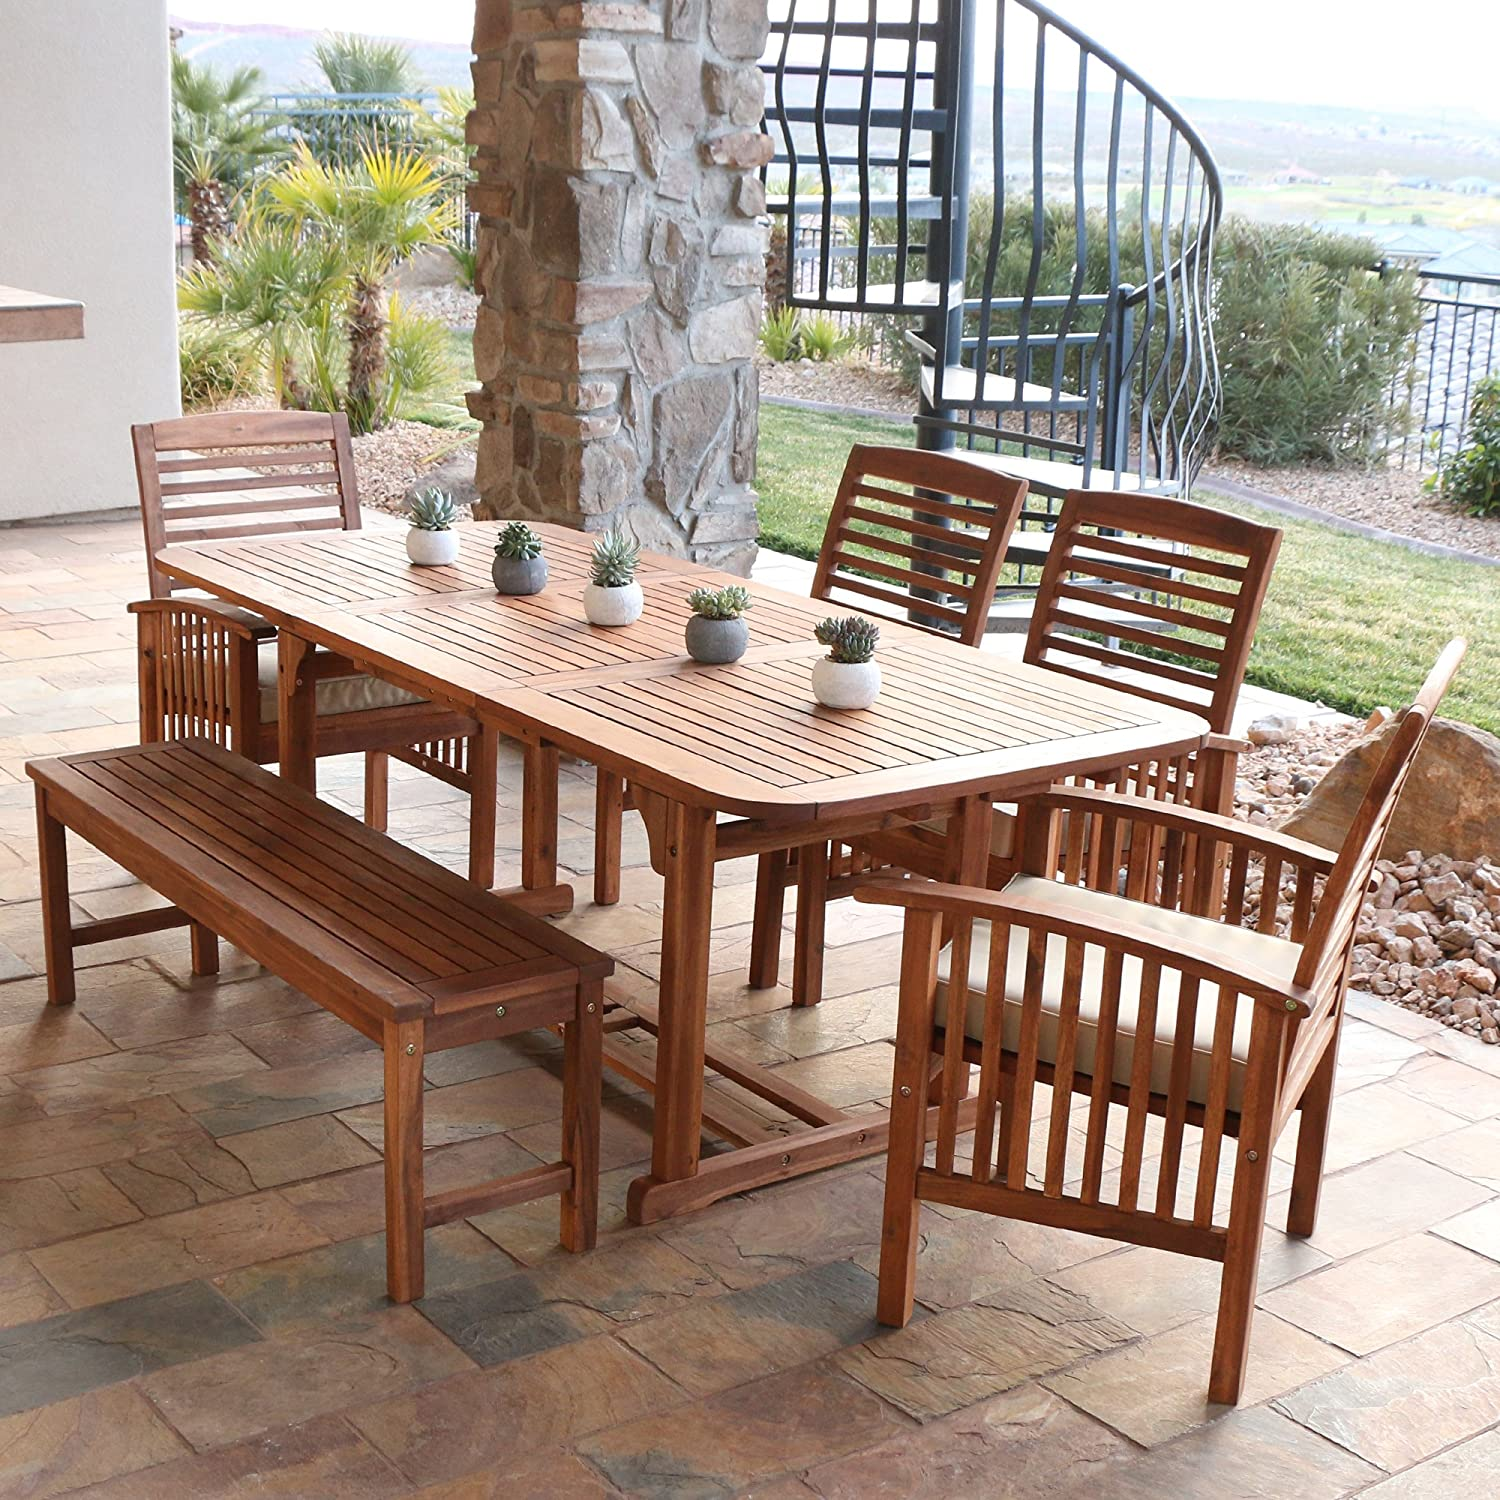 wooden dining furniture. Amazon.com: WE Furniture Solid Acacia Wood 6-Piece Patio Dining Set: Garden \u0026 Outdoor Wooden